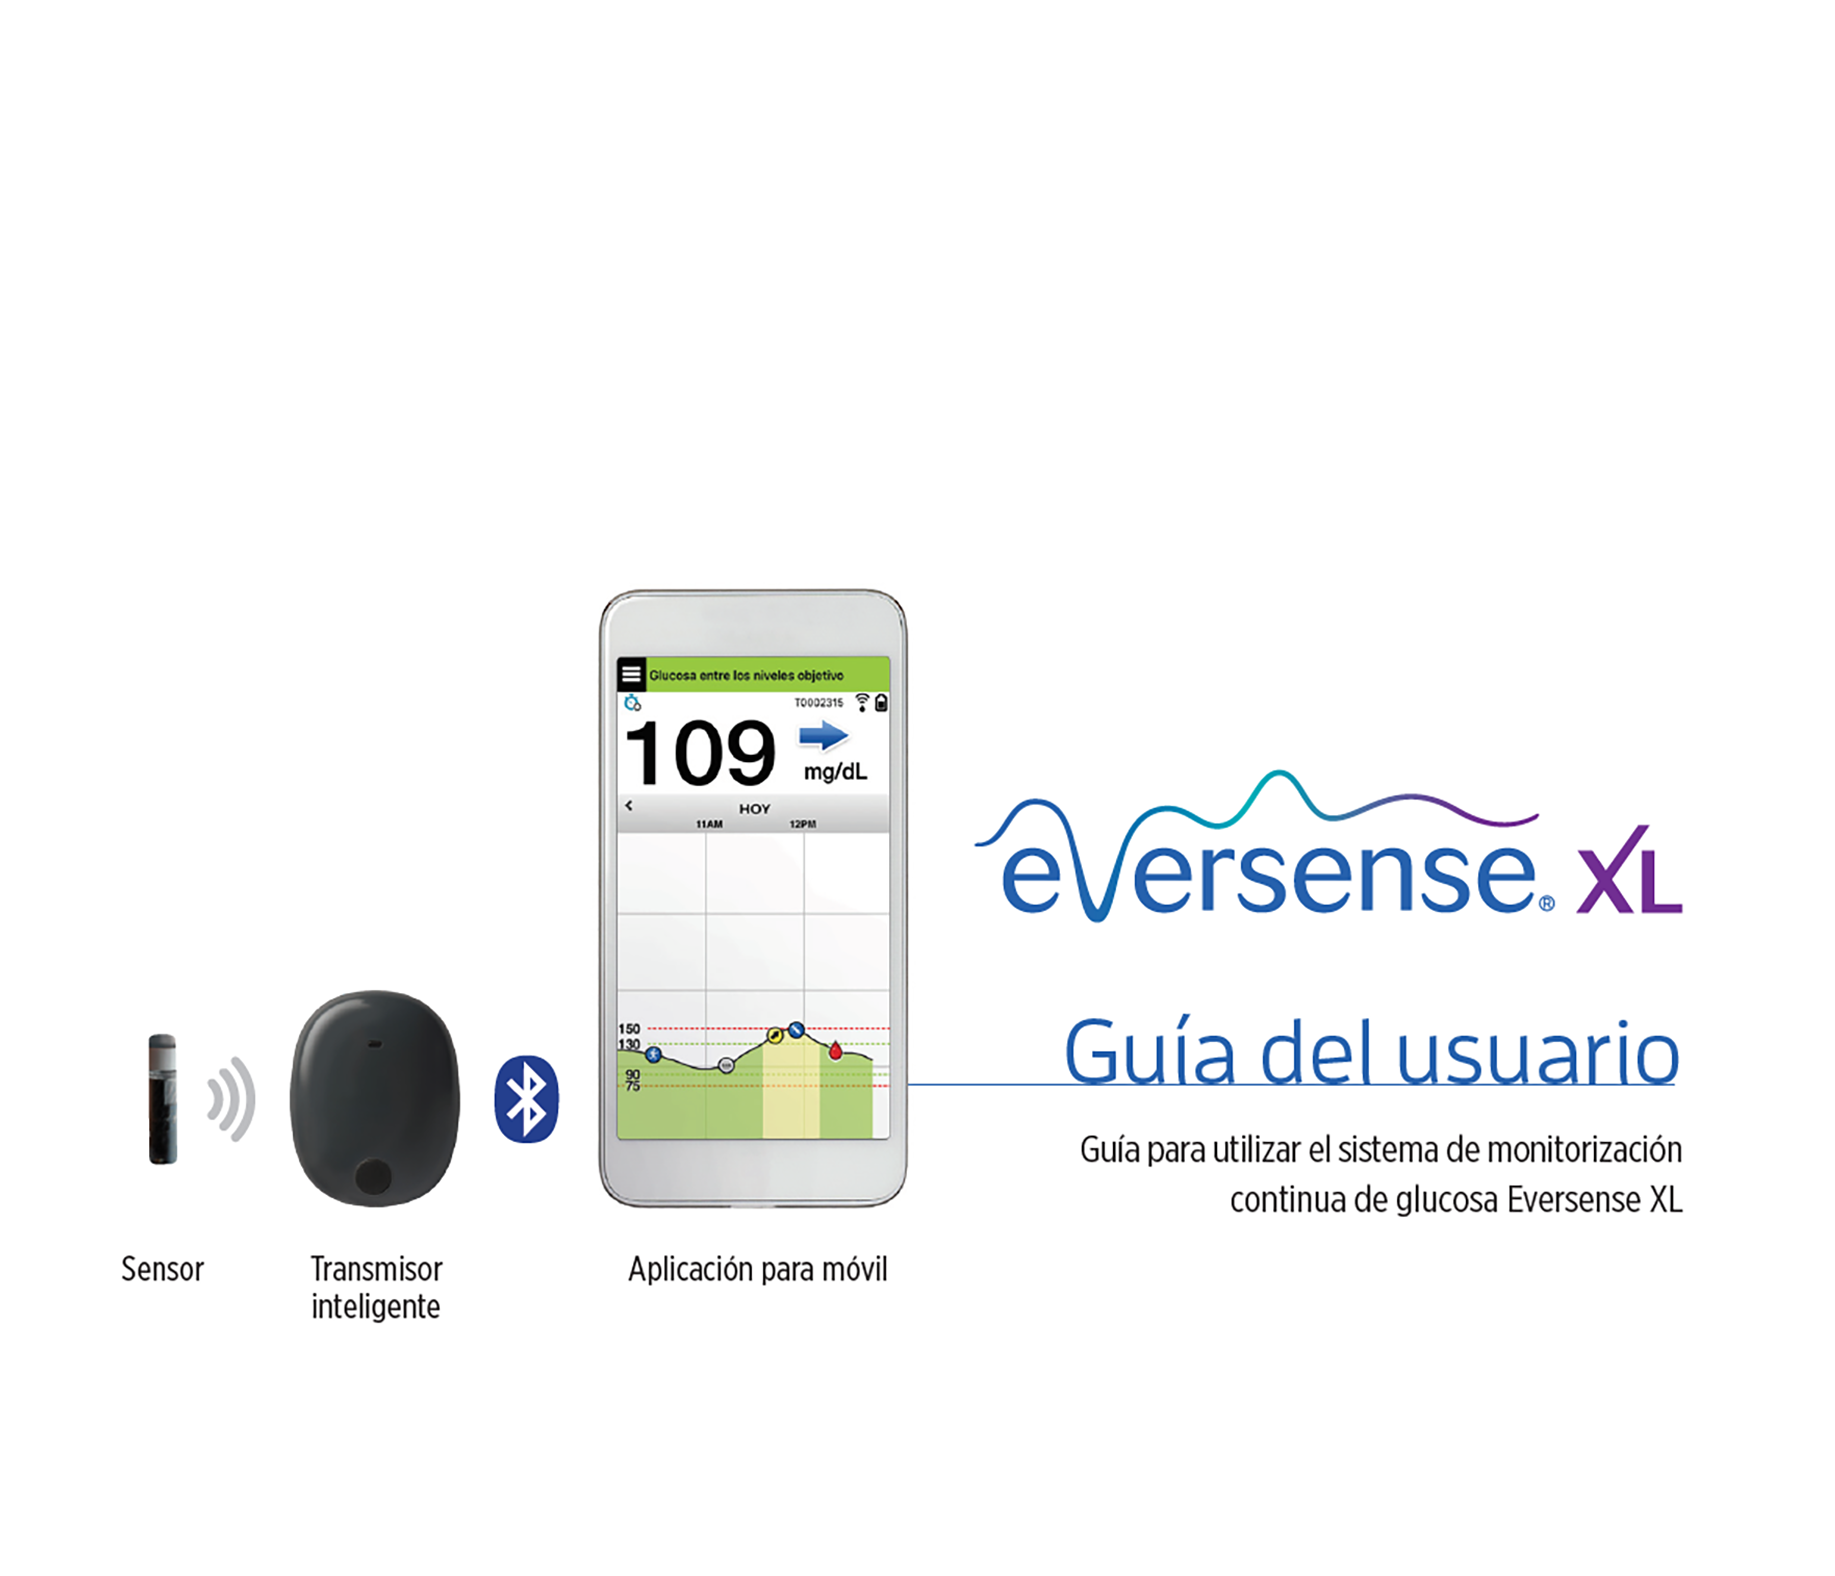 Eversense User Guide